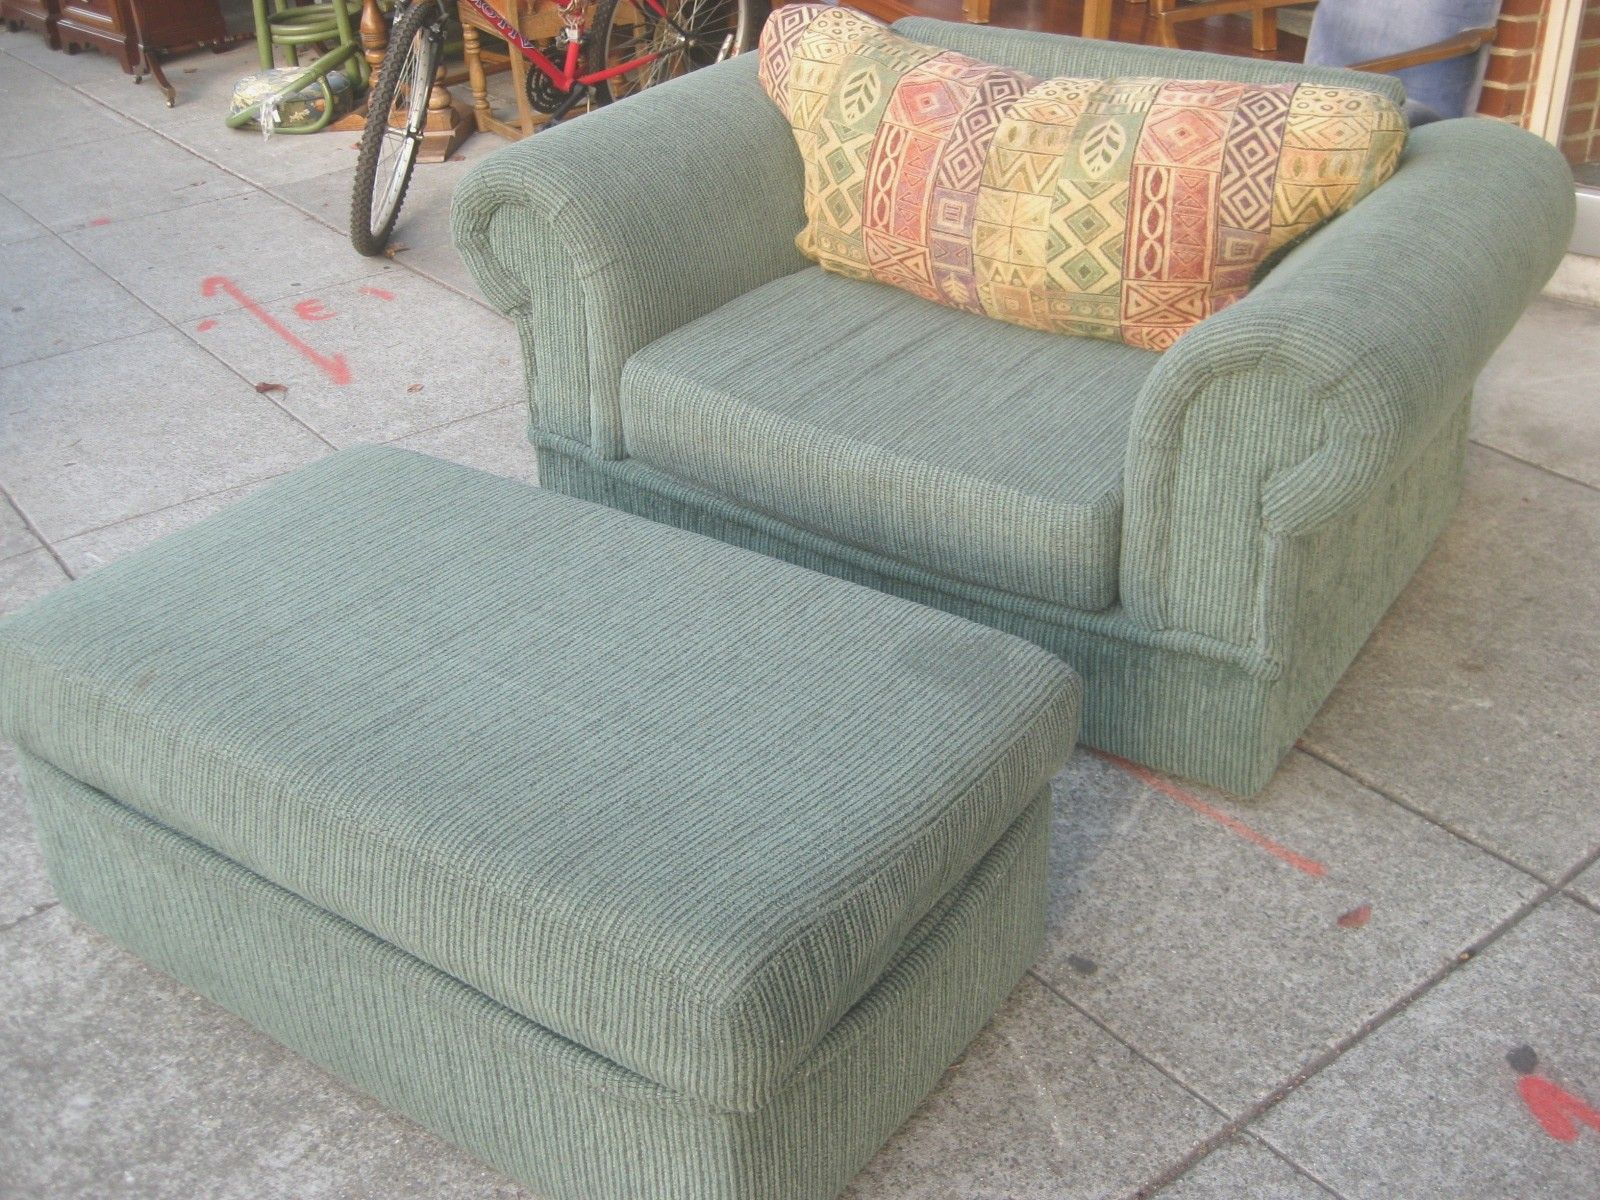 Chairs with Ottomans for Living Room chairs ebay chairs images